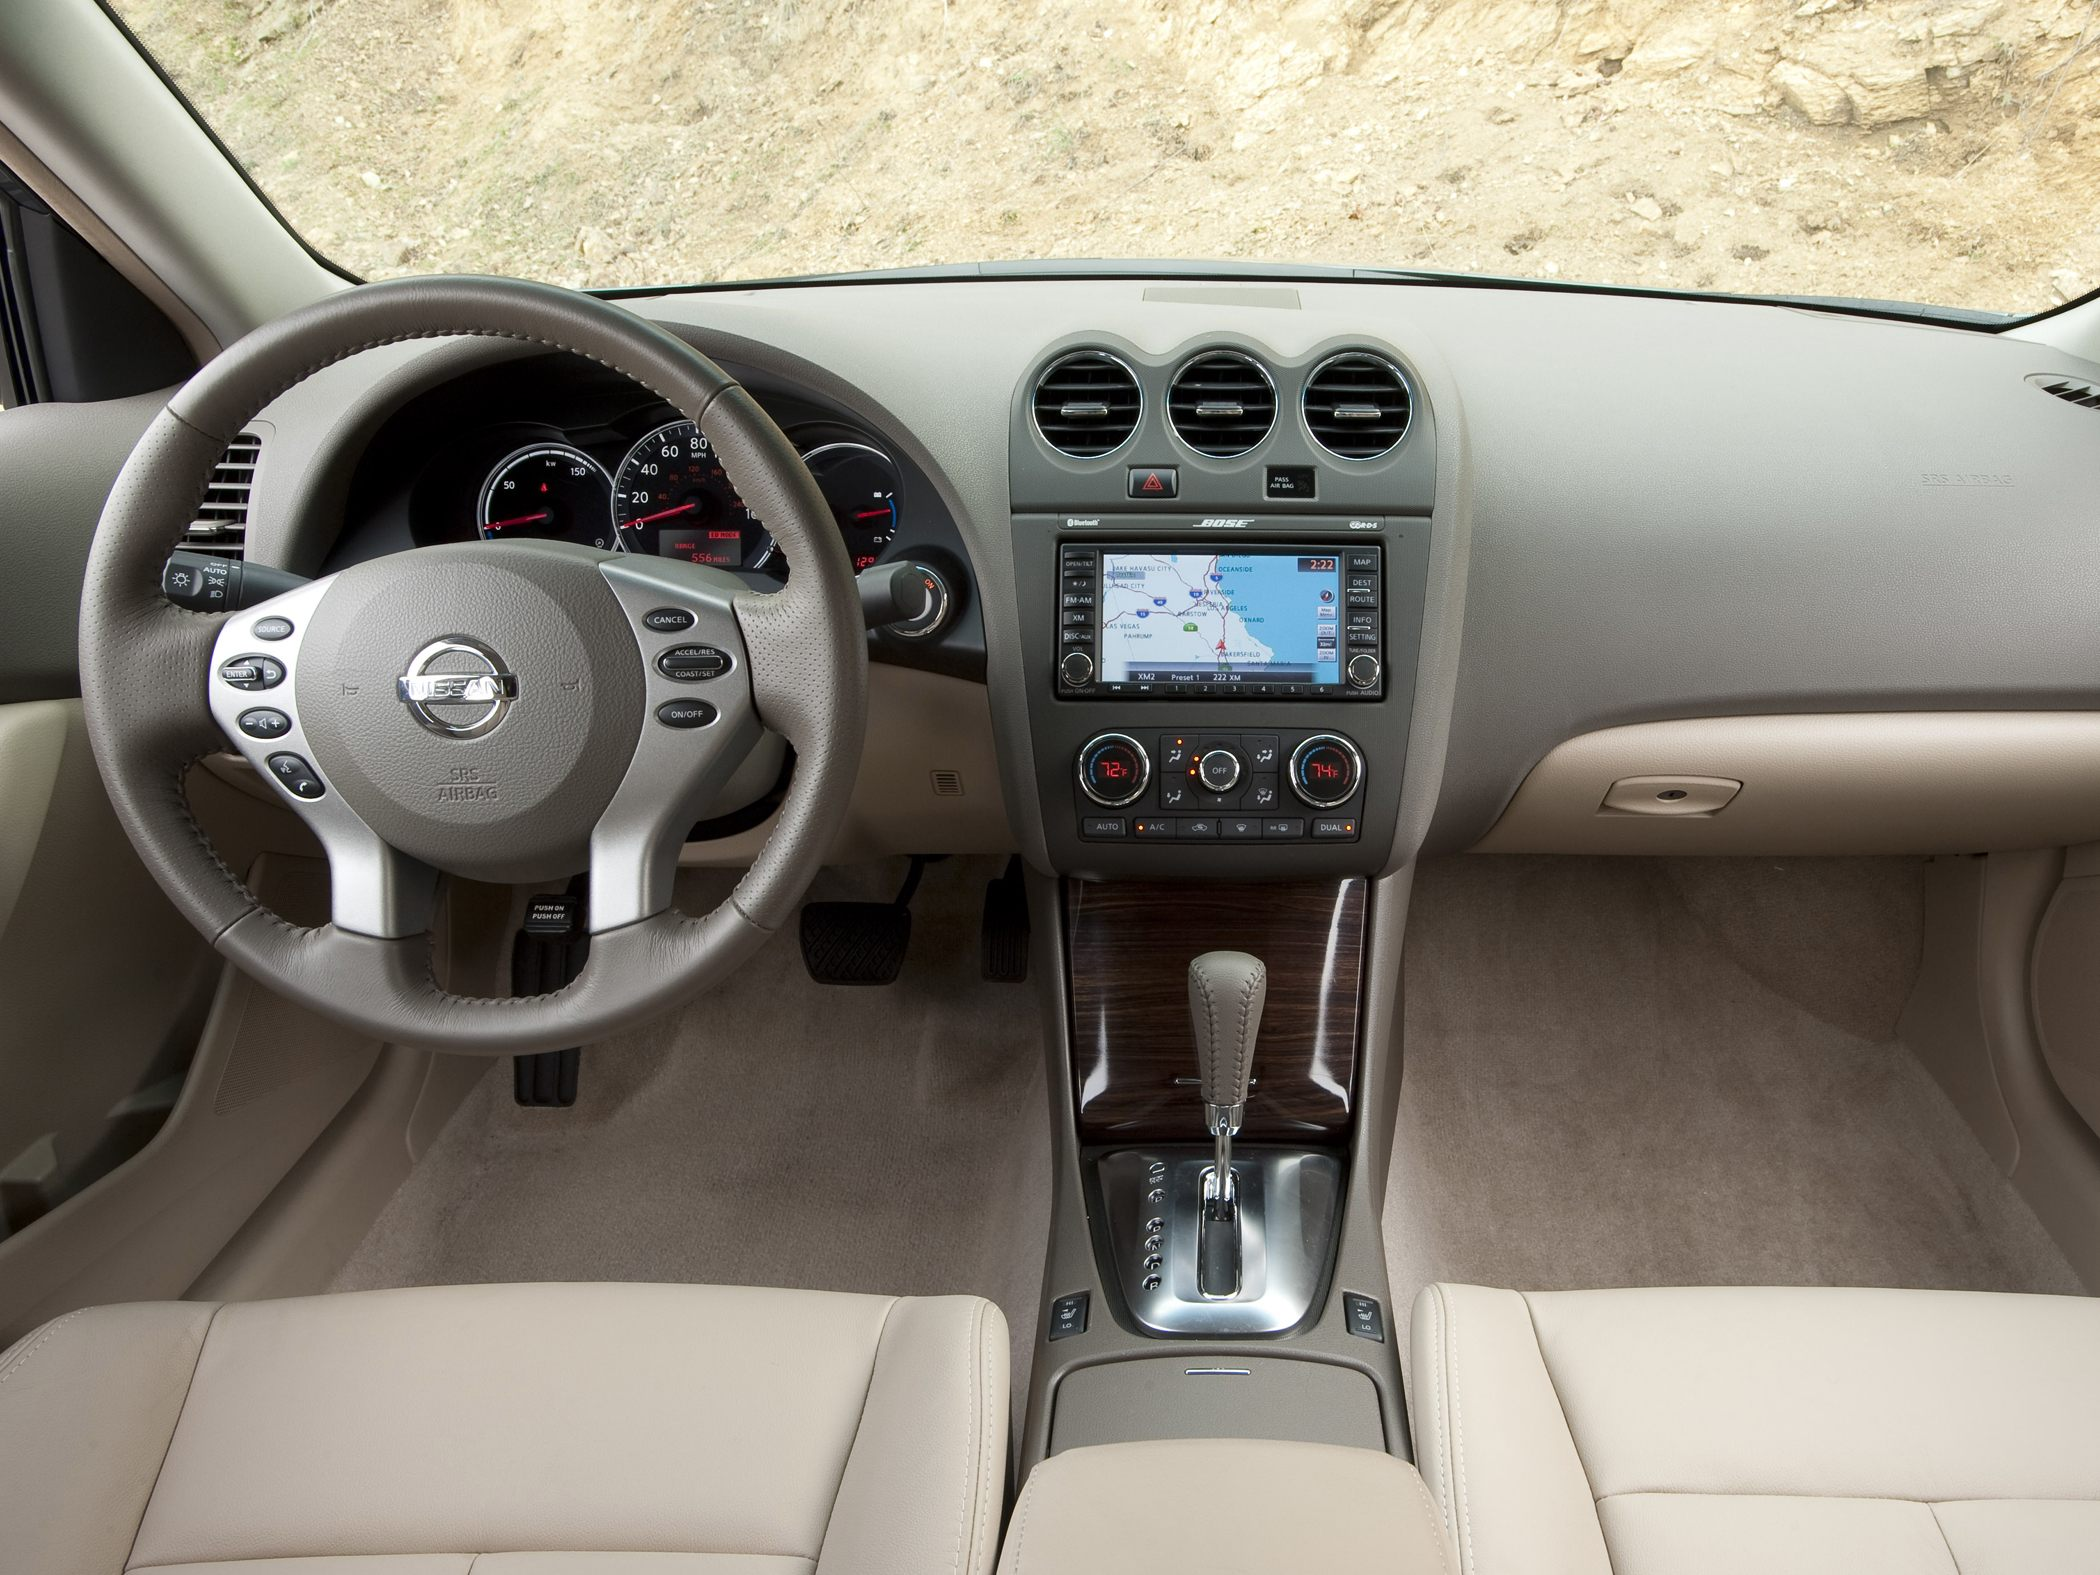 2008 Nissan Altima Features Images Gallery